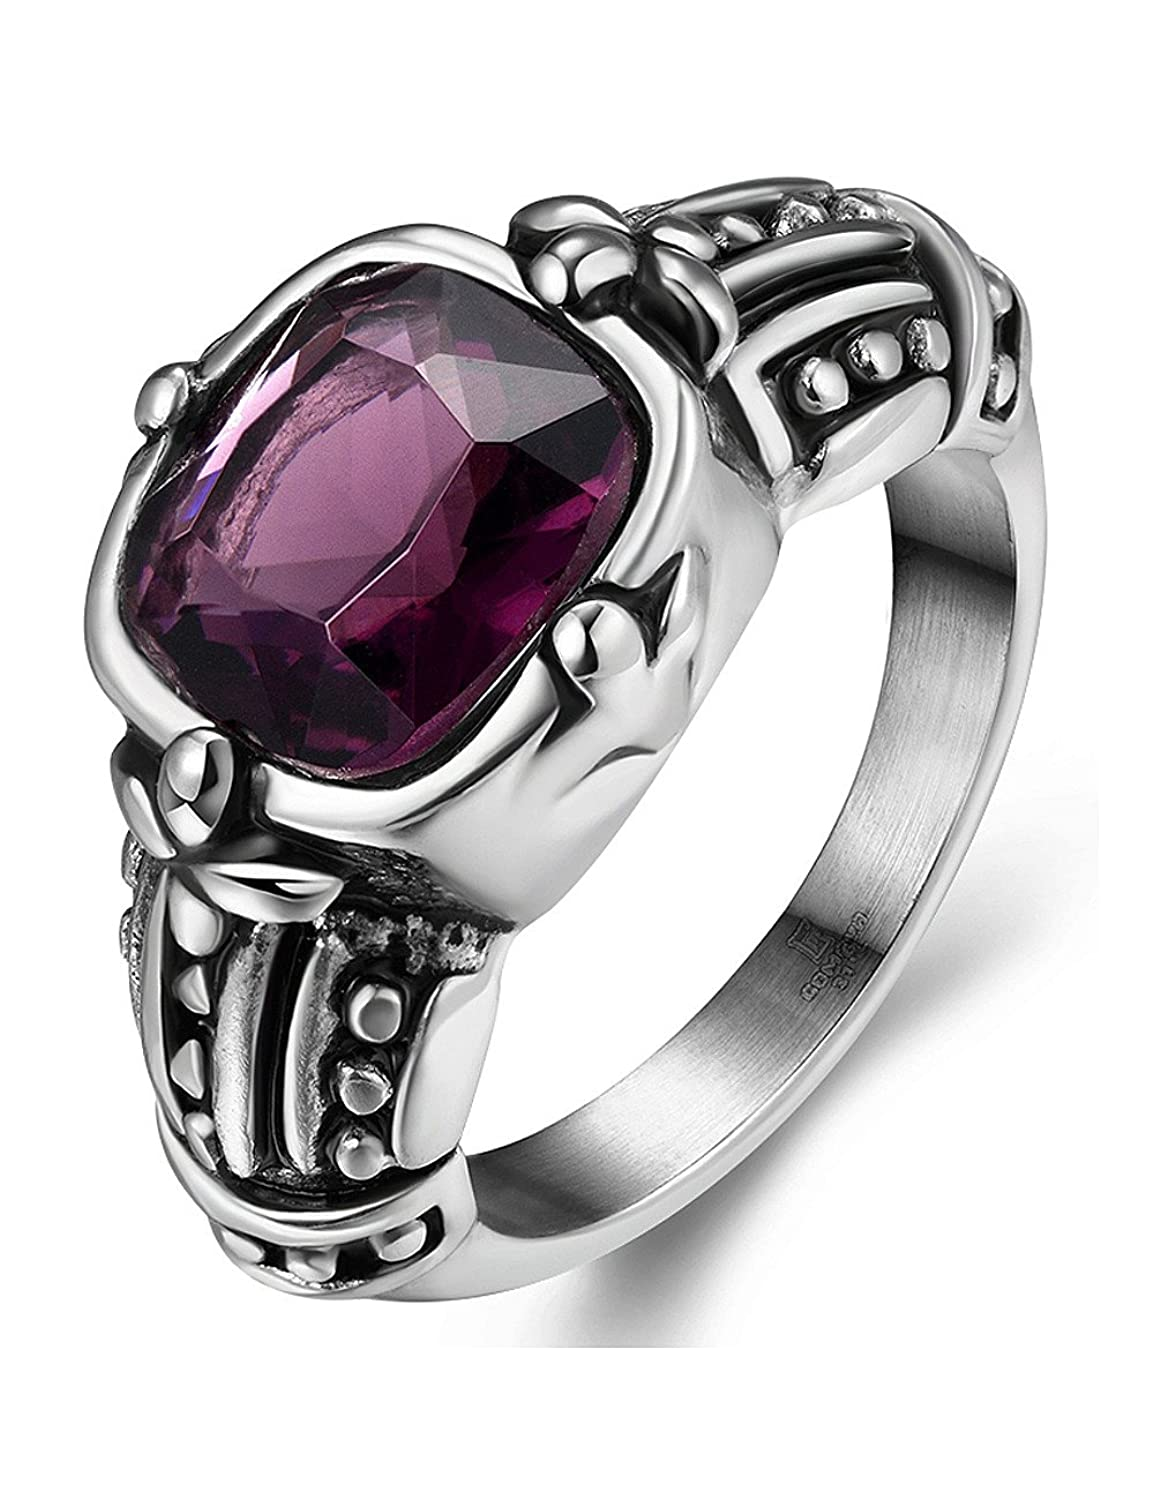 Men's Vintage Gothic Tameless Cushion Cut Amethyst Stainless steel Band size 8